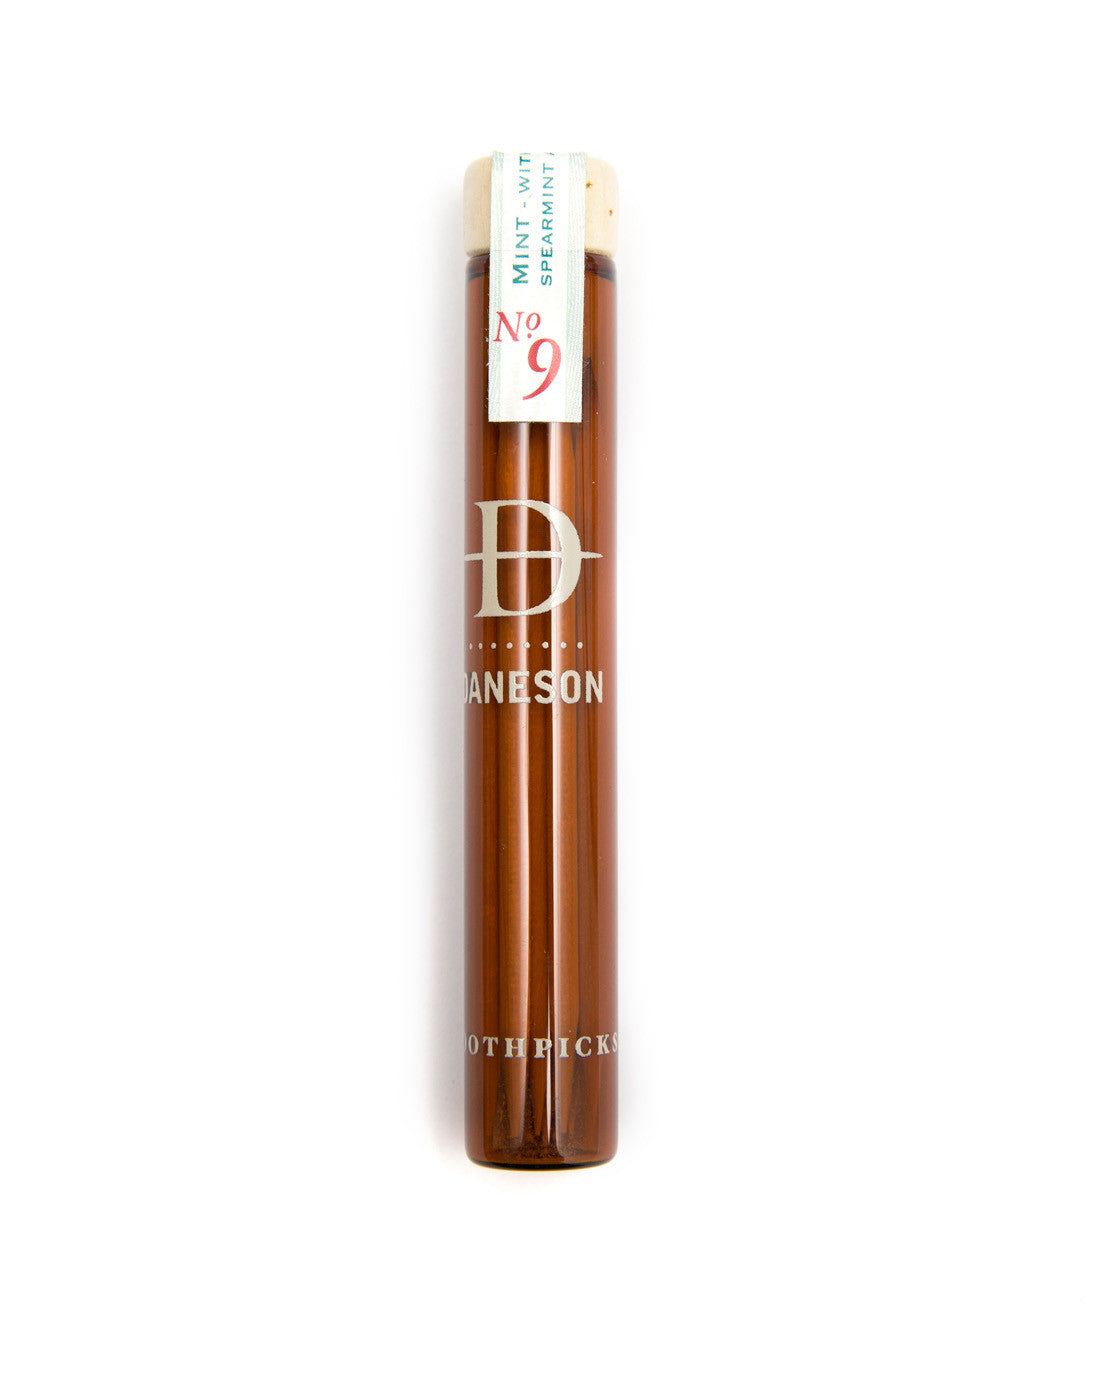 ONE DANESON FLAVORED TOOTHPICKS<br>(to combat that stubborn vaper's tongue)